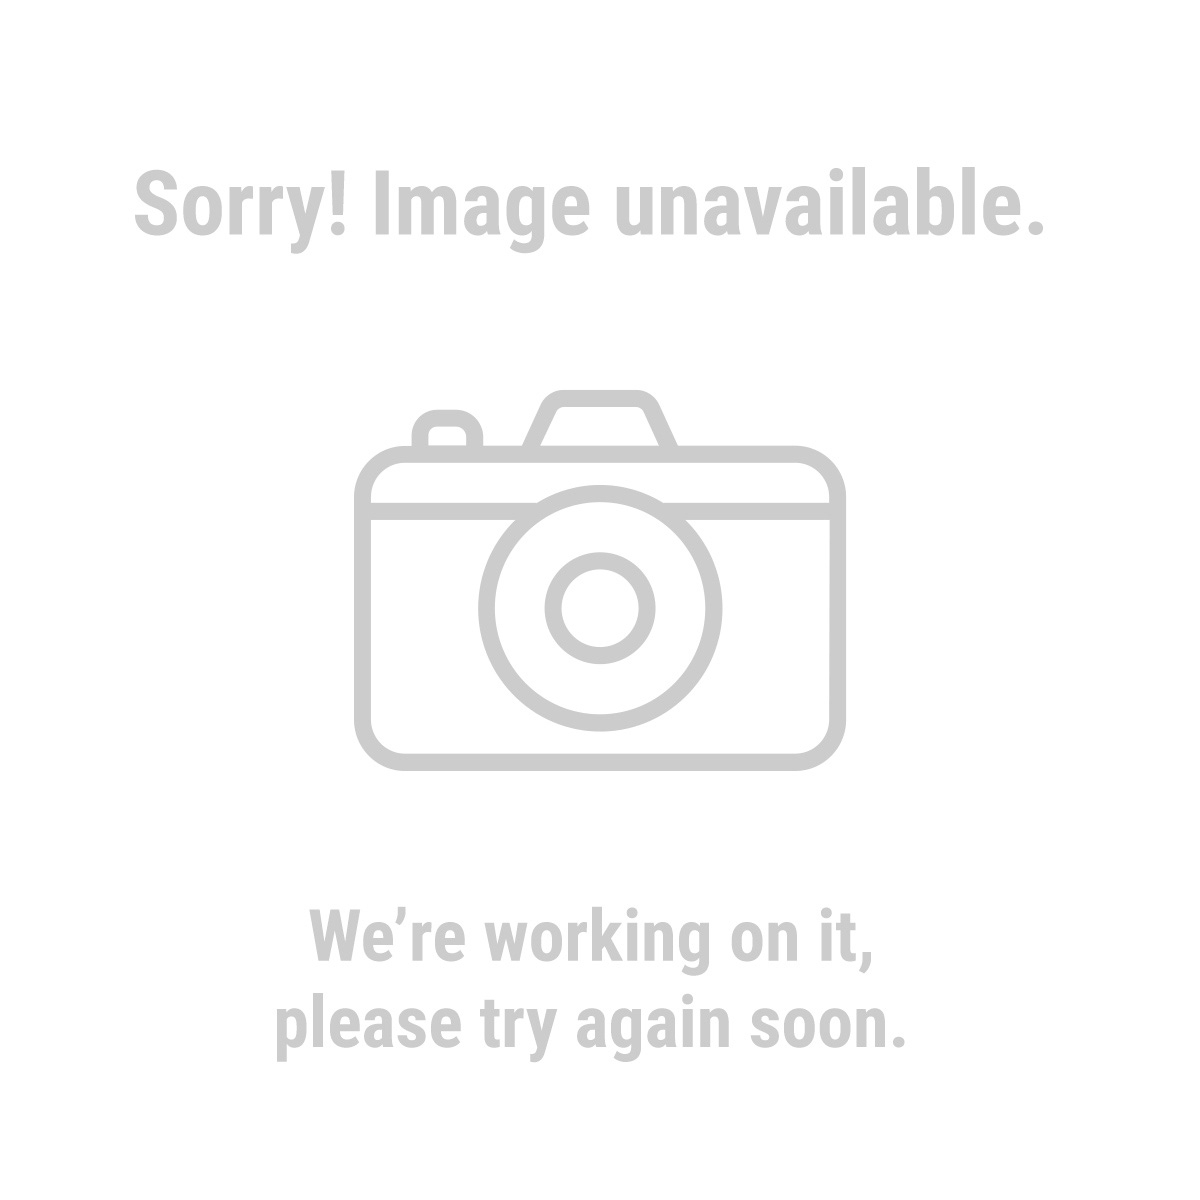 Central Forge® 95203 Portable Carpenter's Vise